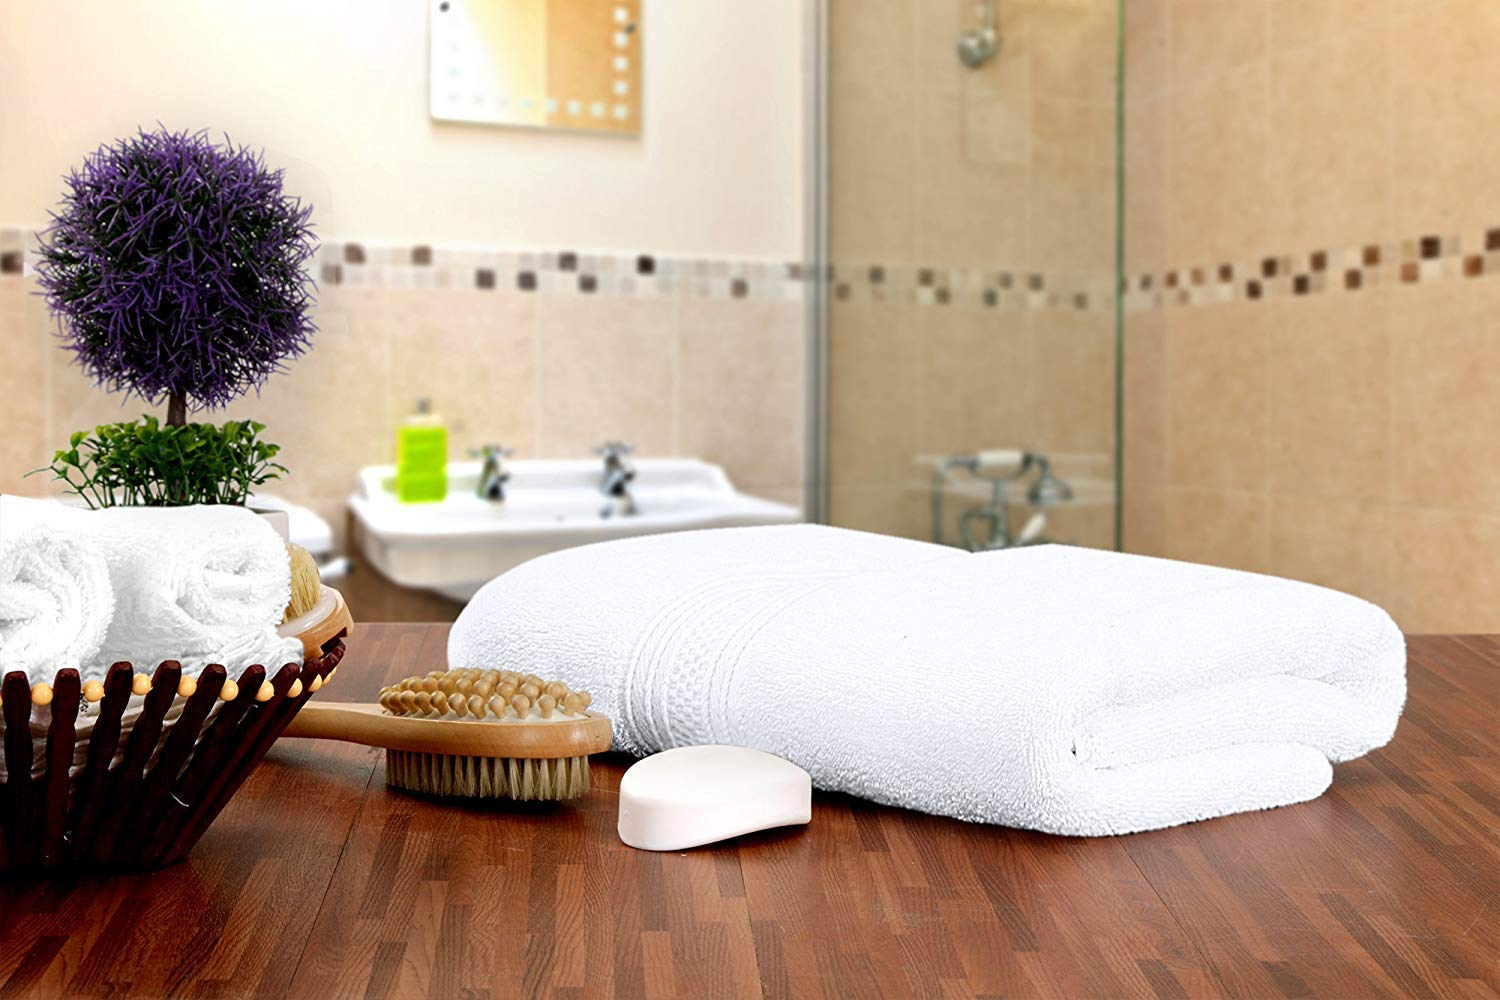 Utopia Towels Pack of 24-700 GSM Premium Cotton Bath Towel (White, 27 x 54 Inches) Luxury Bath Sheet Perfect for Home, Bathrooms, Pool and Gym Ring-Spun Cotton (White) by Utopia Towels (Image #6)